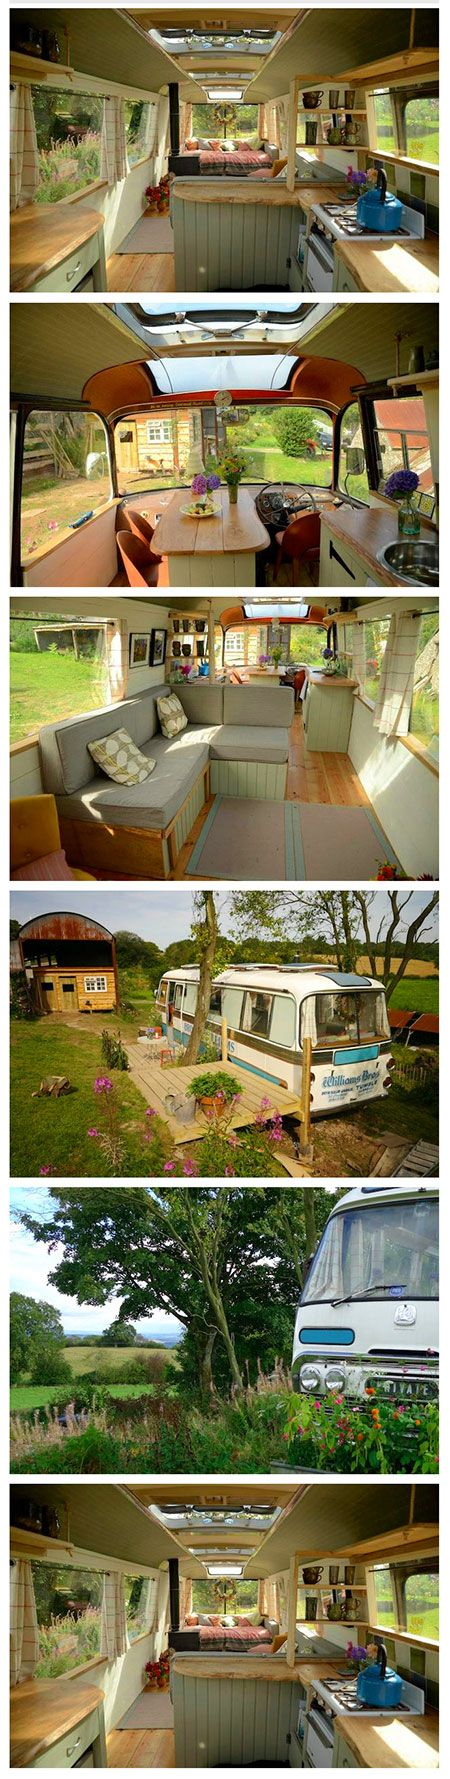 6 Awesome Pictures Showing an Old Bus Turned Chic Home. Wow! You look on the outside and never guess how great it looks inside!